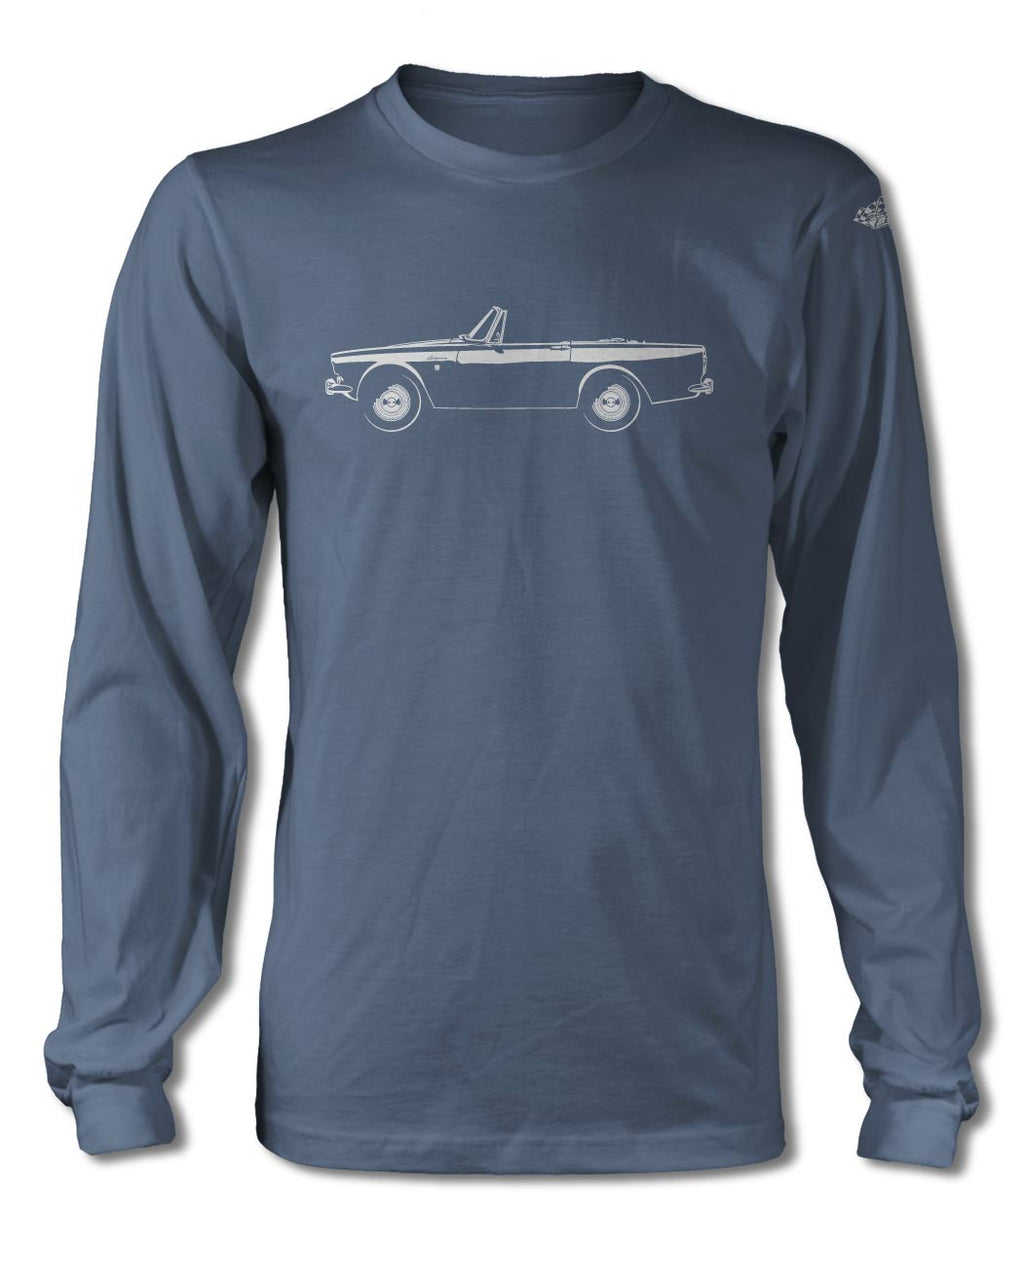 Sunbeam Alpine Series IV & V T-Shirt - Long Sleeves - Side View